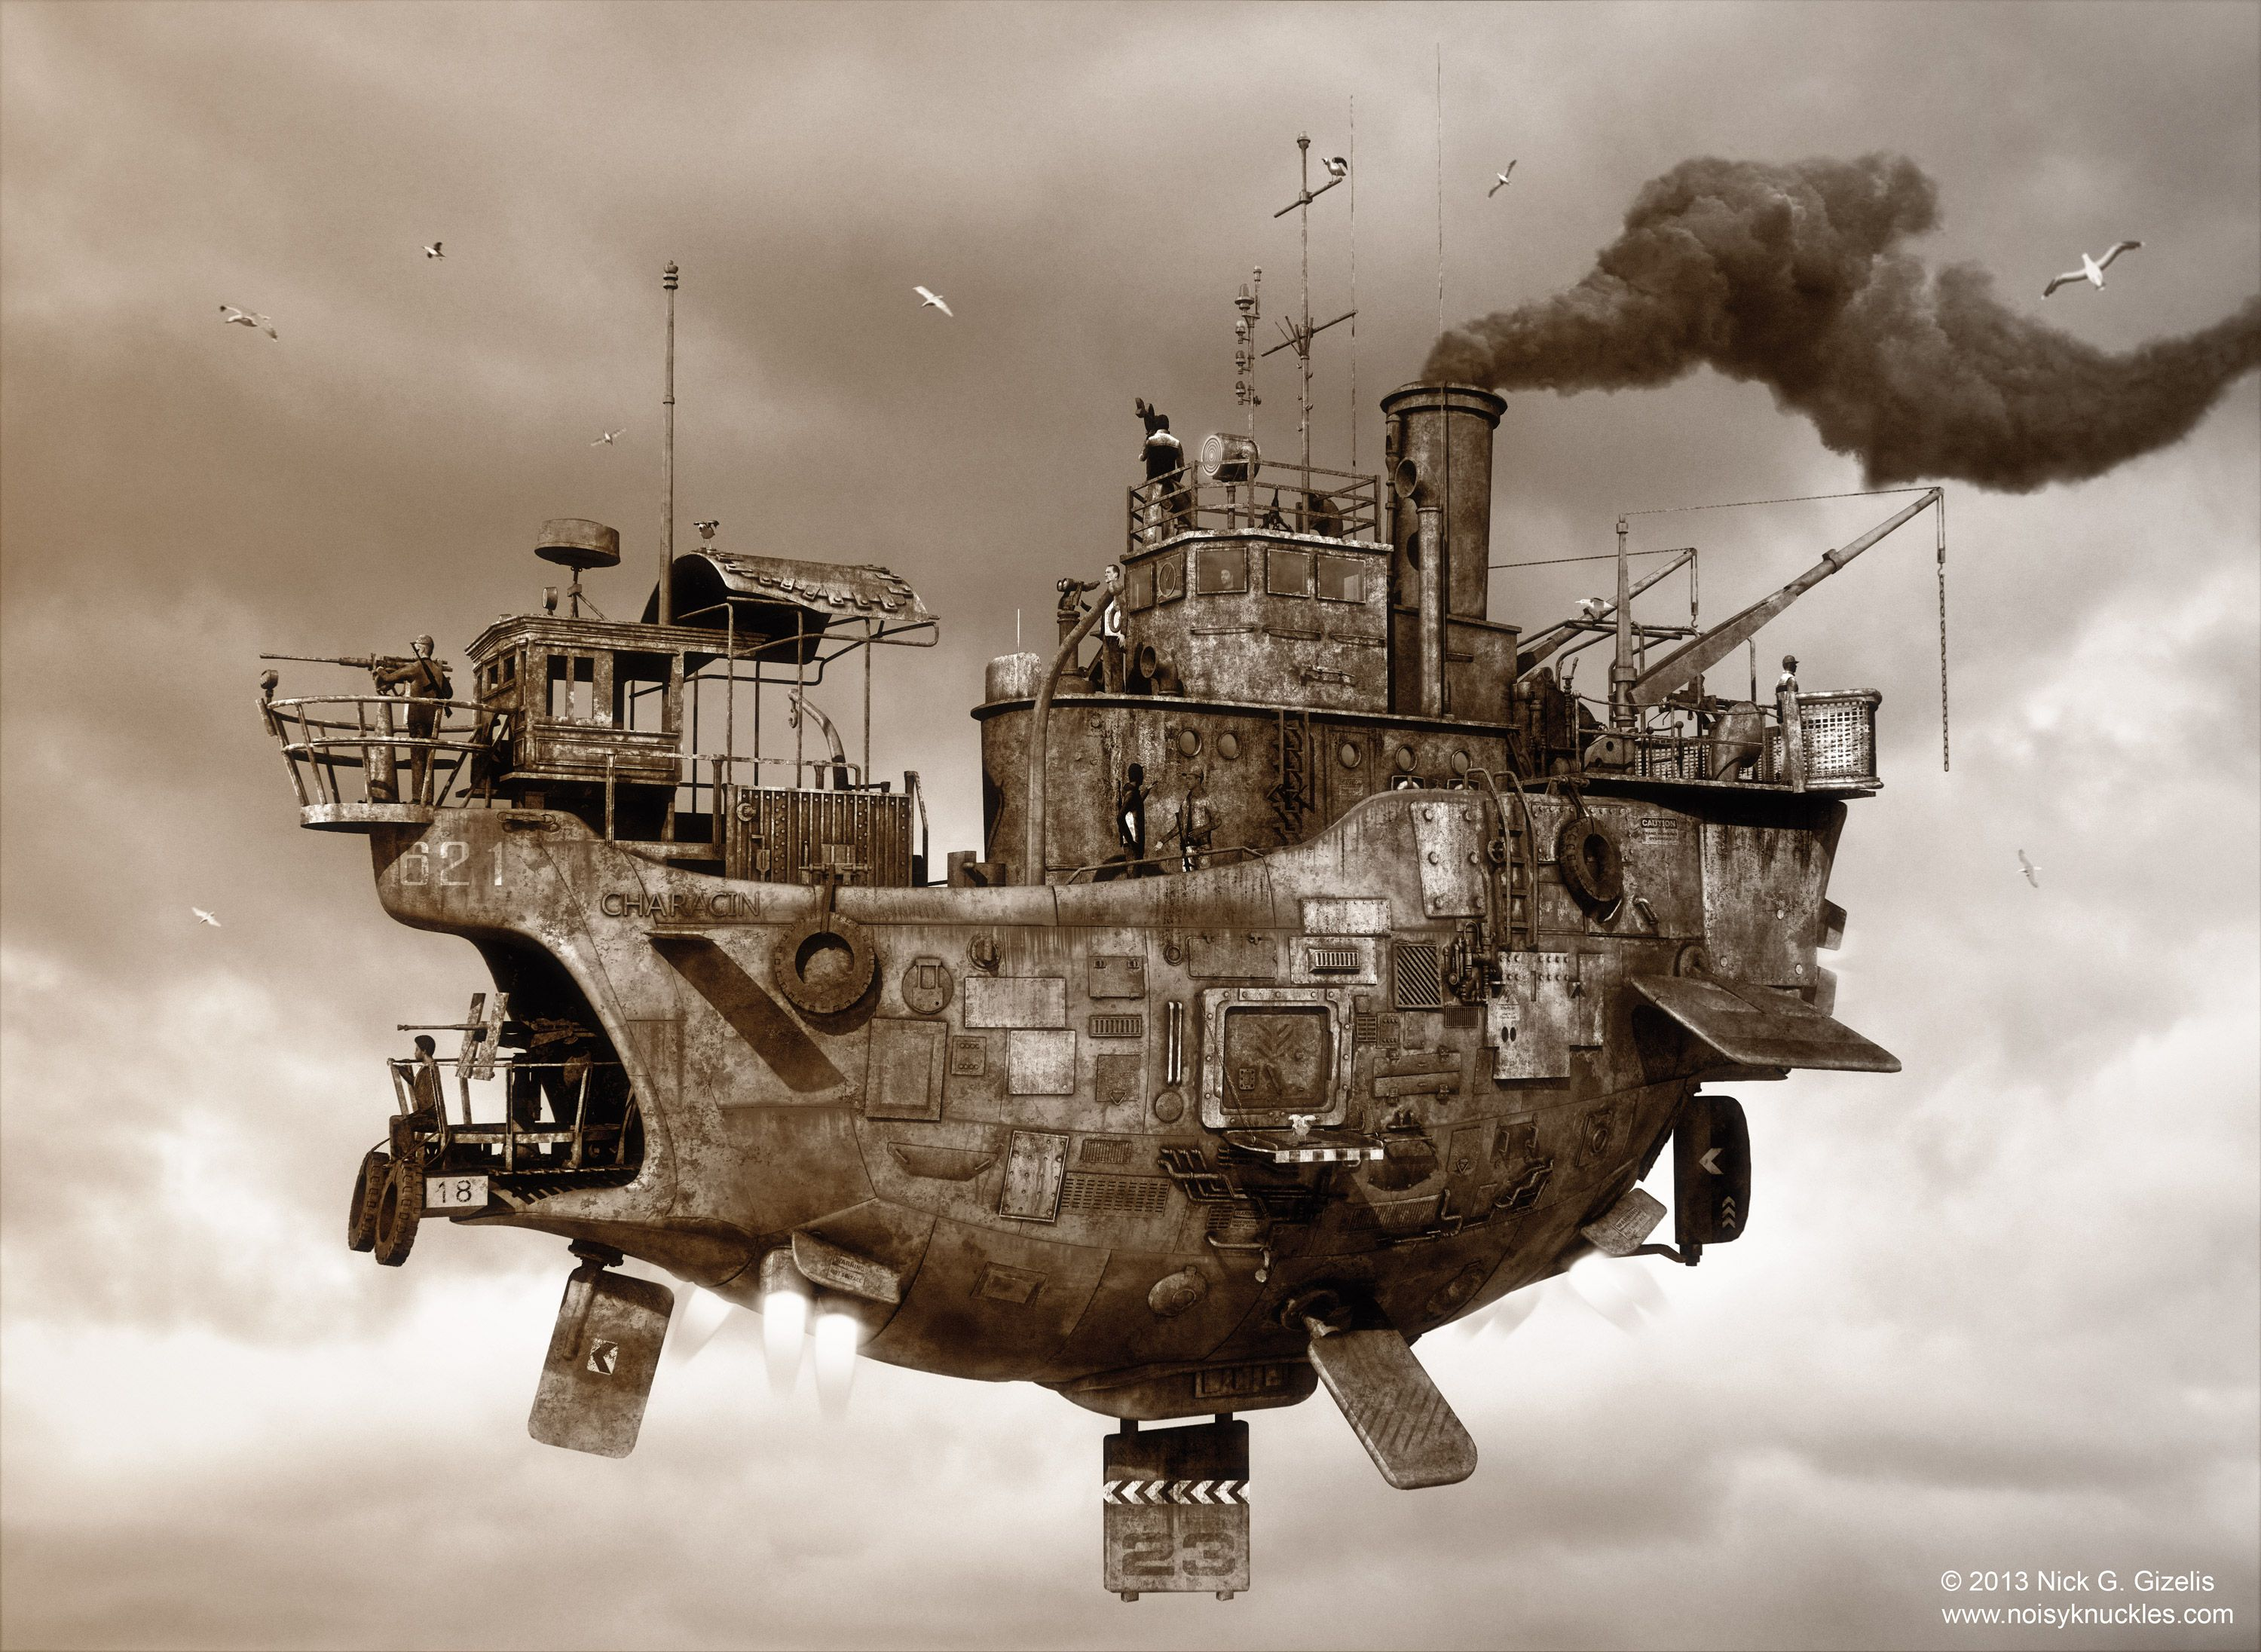 Nick Gizelis. Inspired by the amazing concept work of Ian McQue